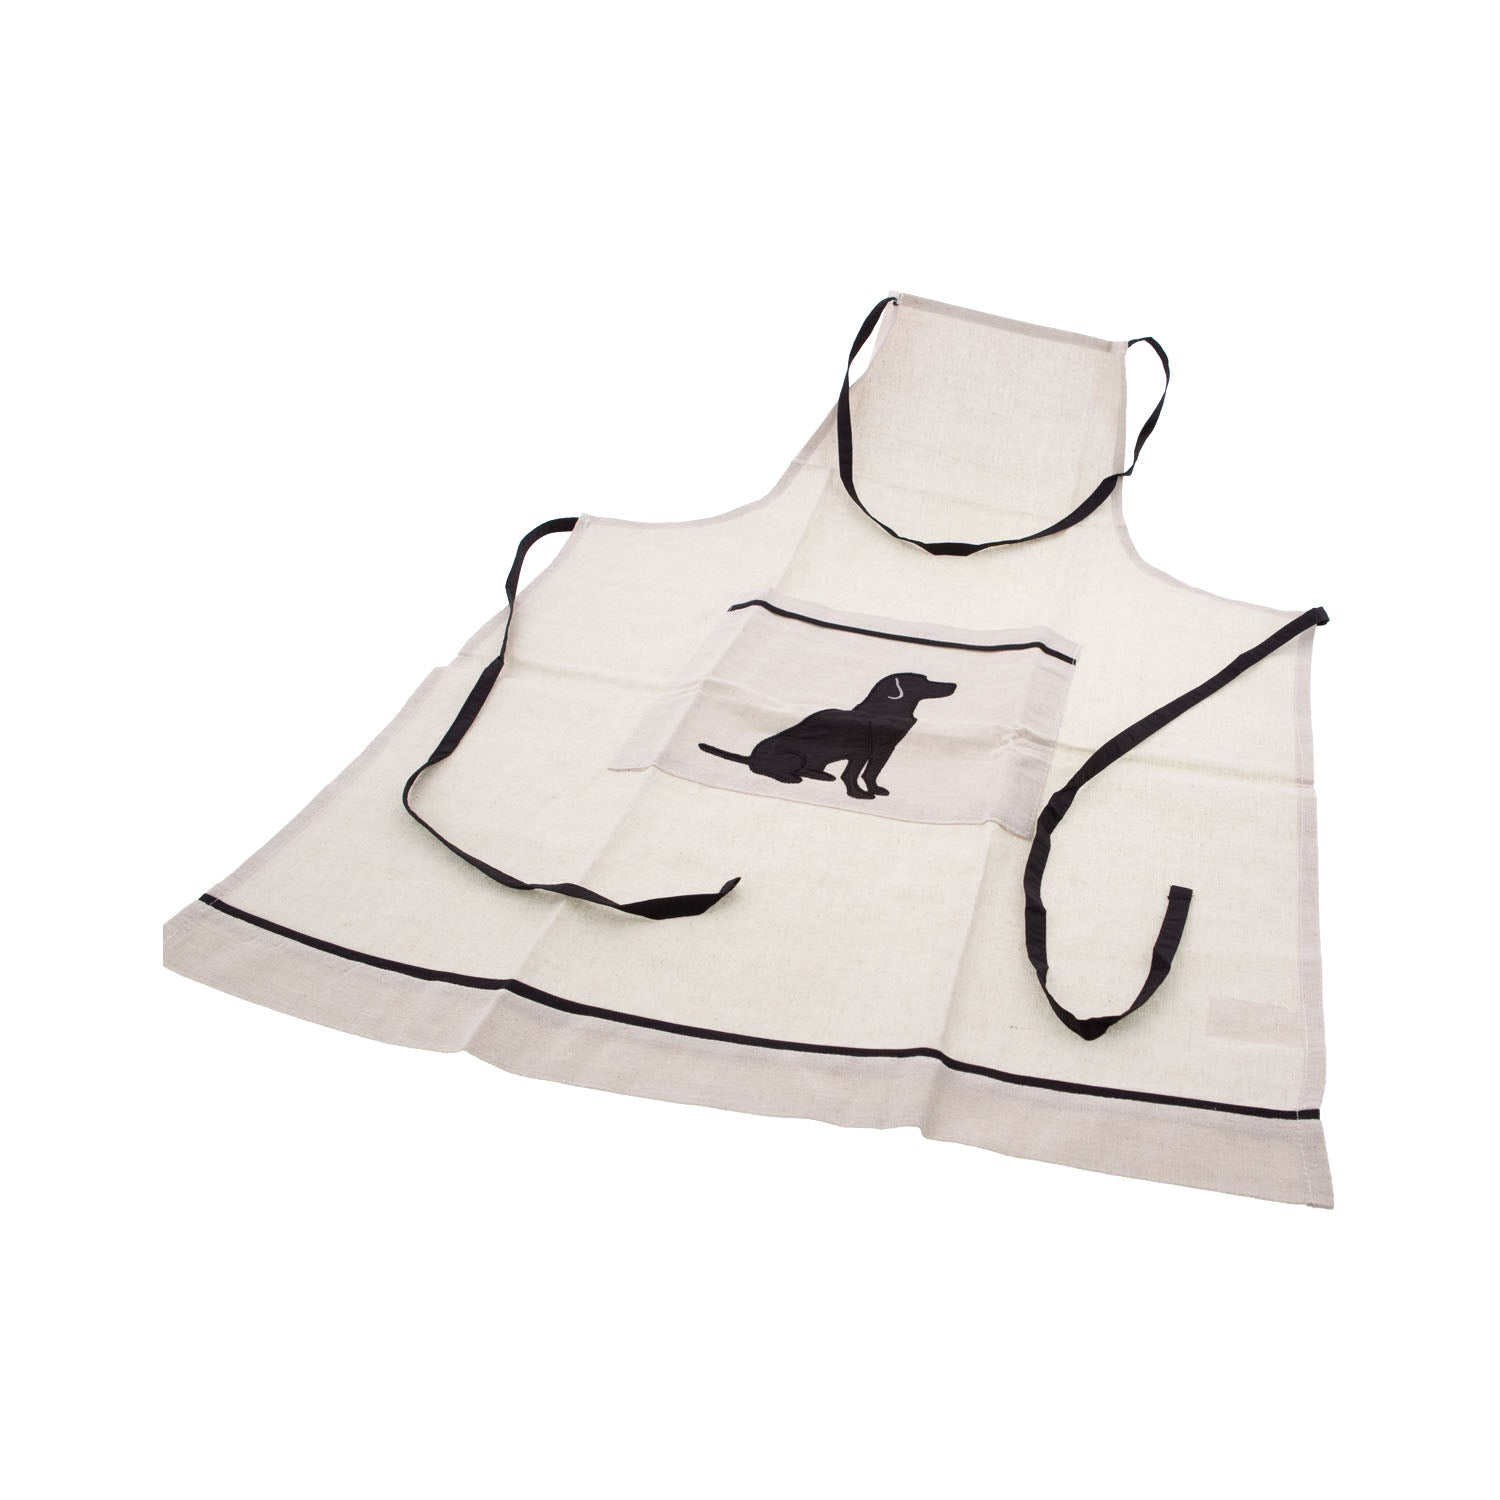 Dog Lover Gifts available at Dog Krazy Gifts - Black Labrador motif on cream Apron - Part of the Black Dog Range available from Dog Krazy Gifts